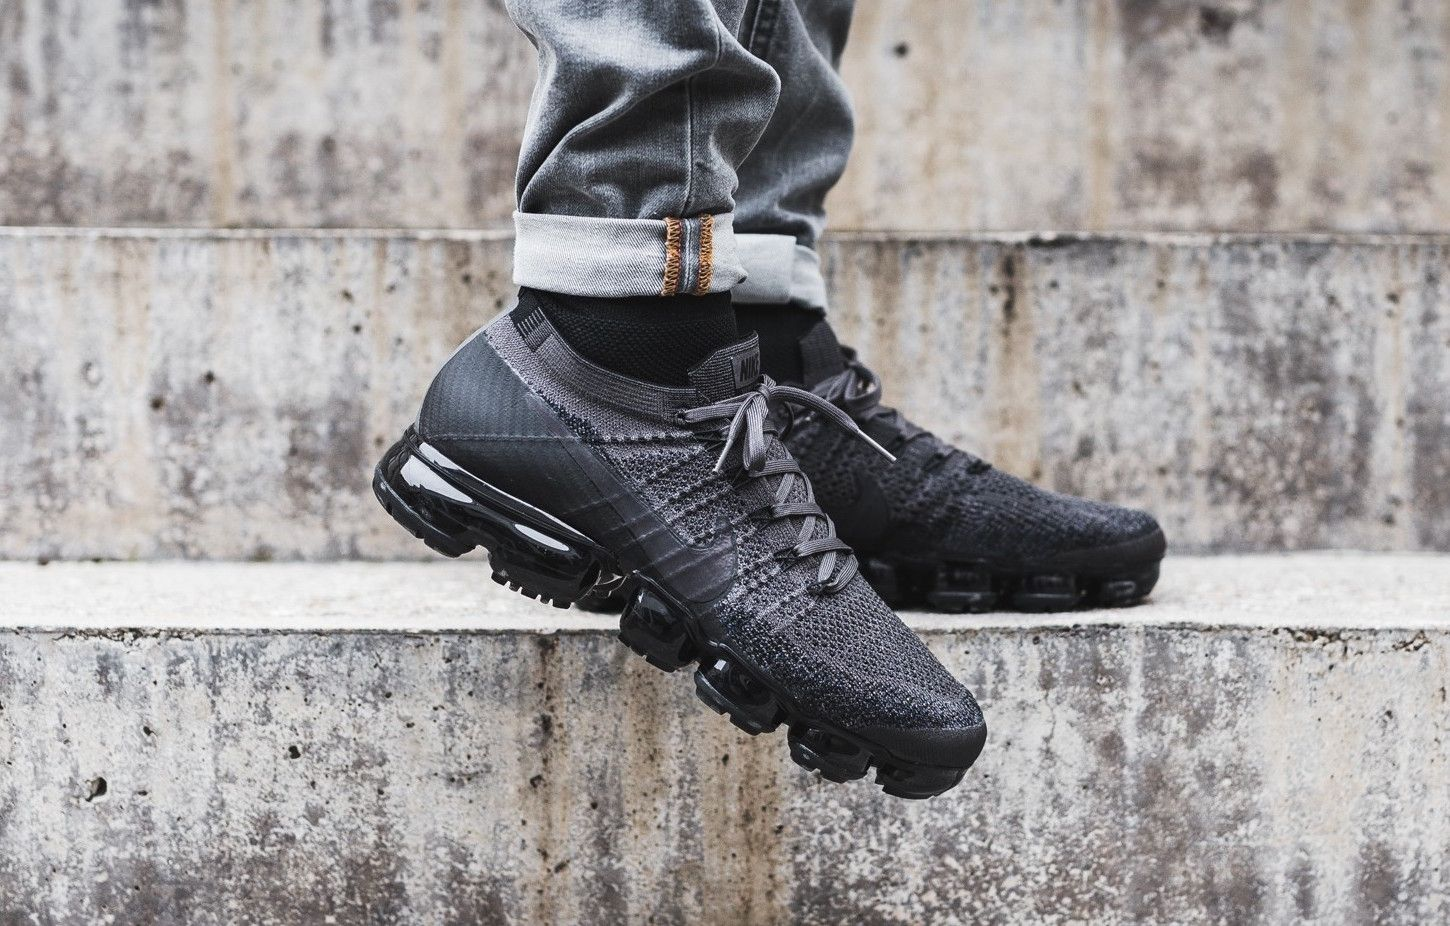 b9c29eea0e13 Nike Air VaporMax Midnight Fog Dropping Next Week